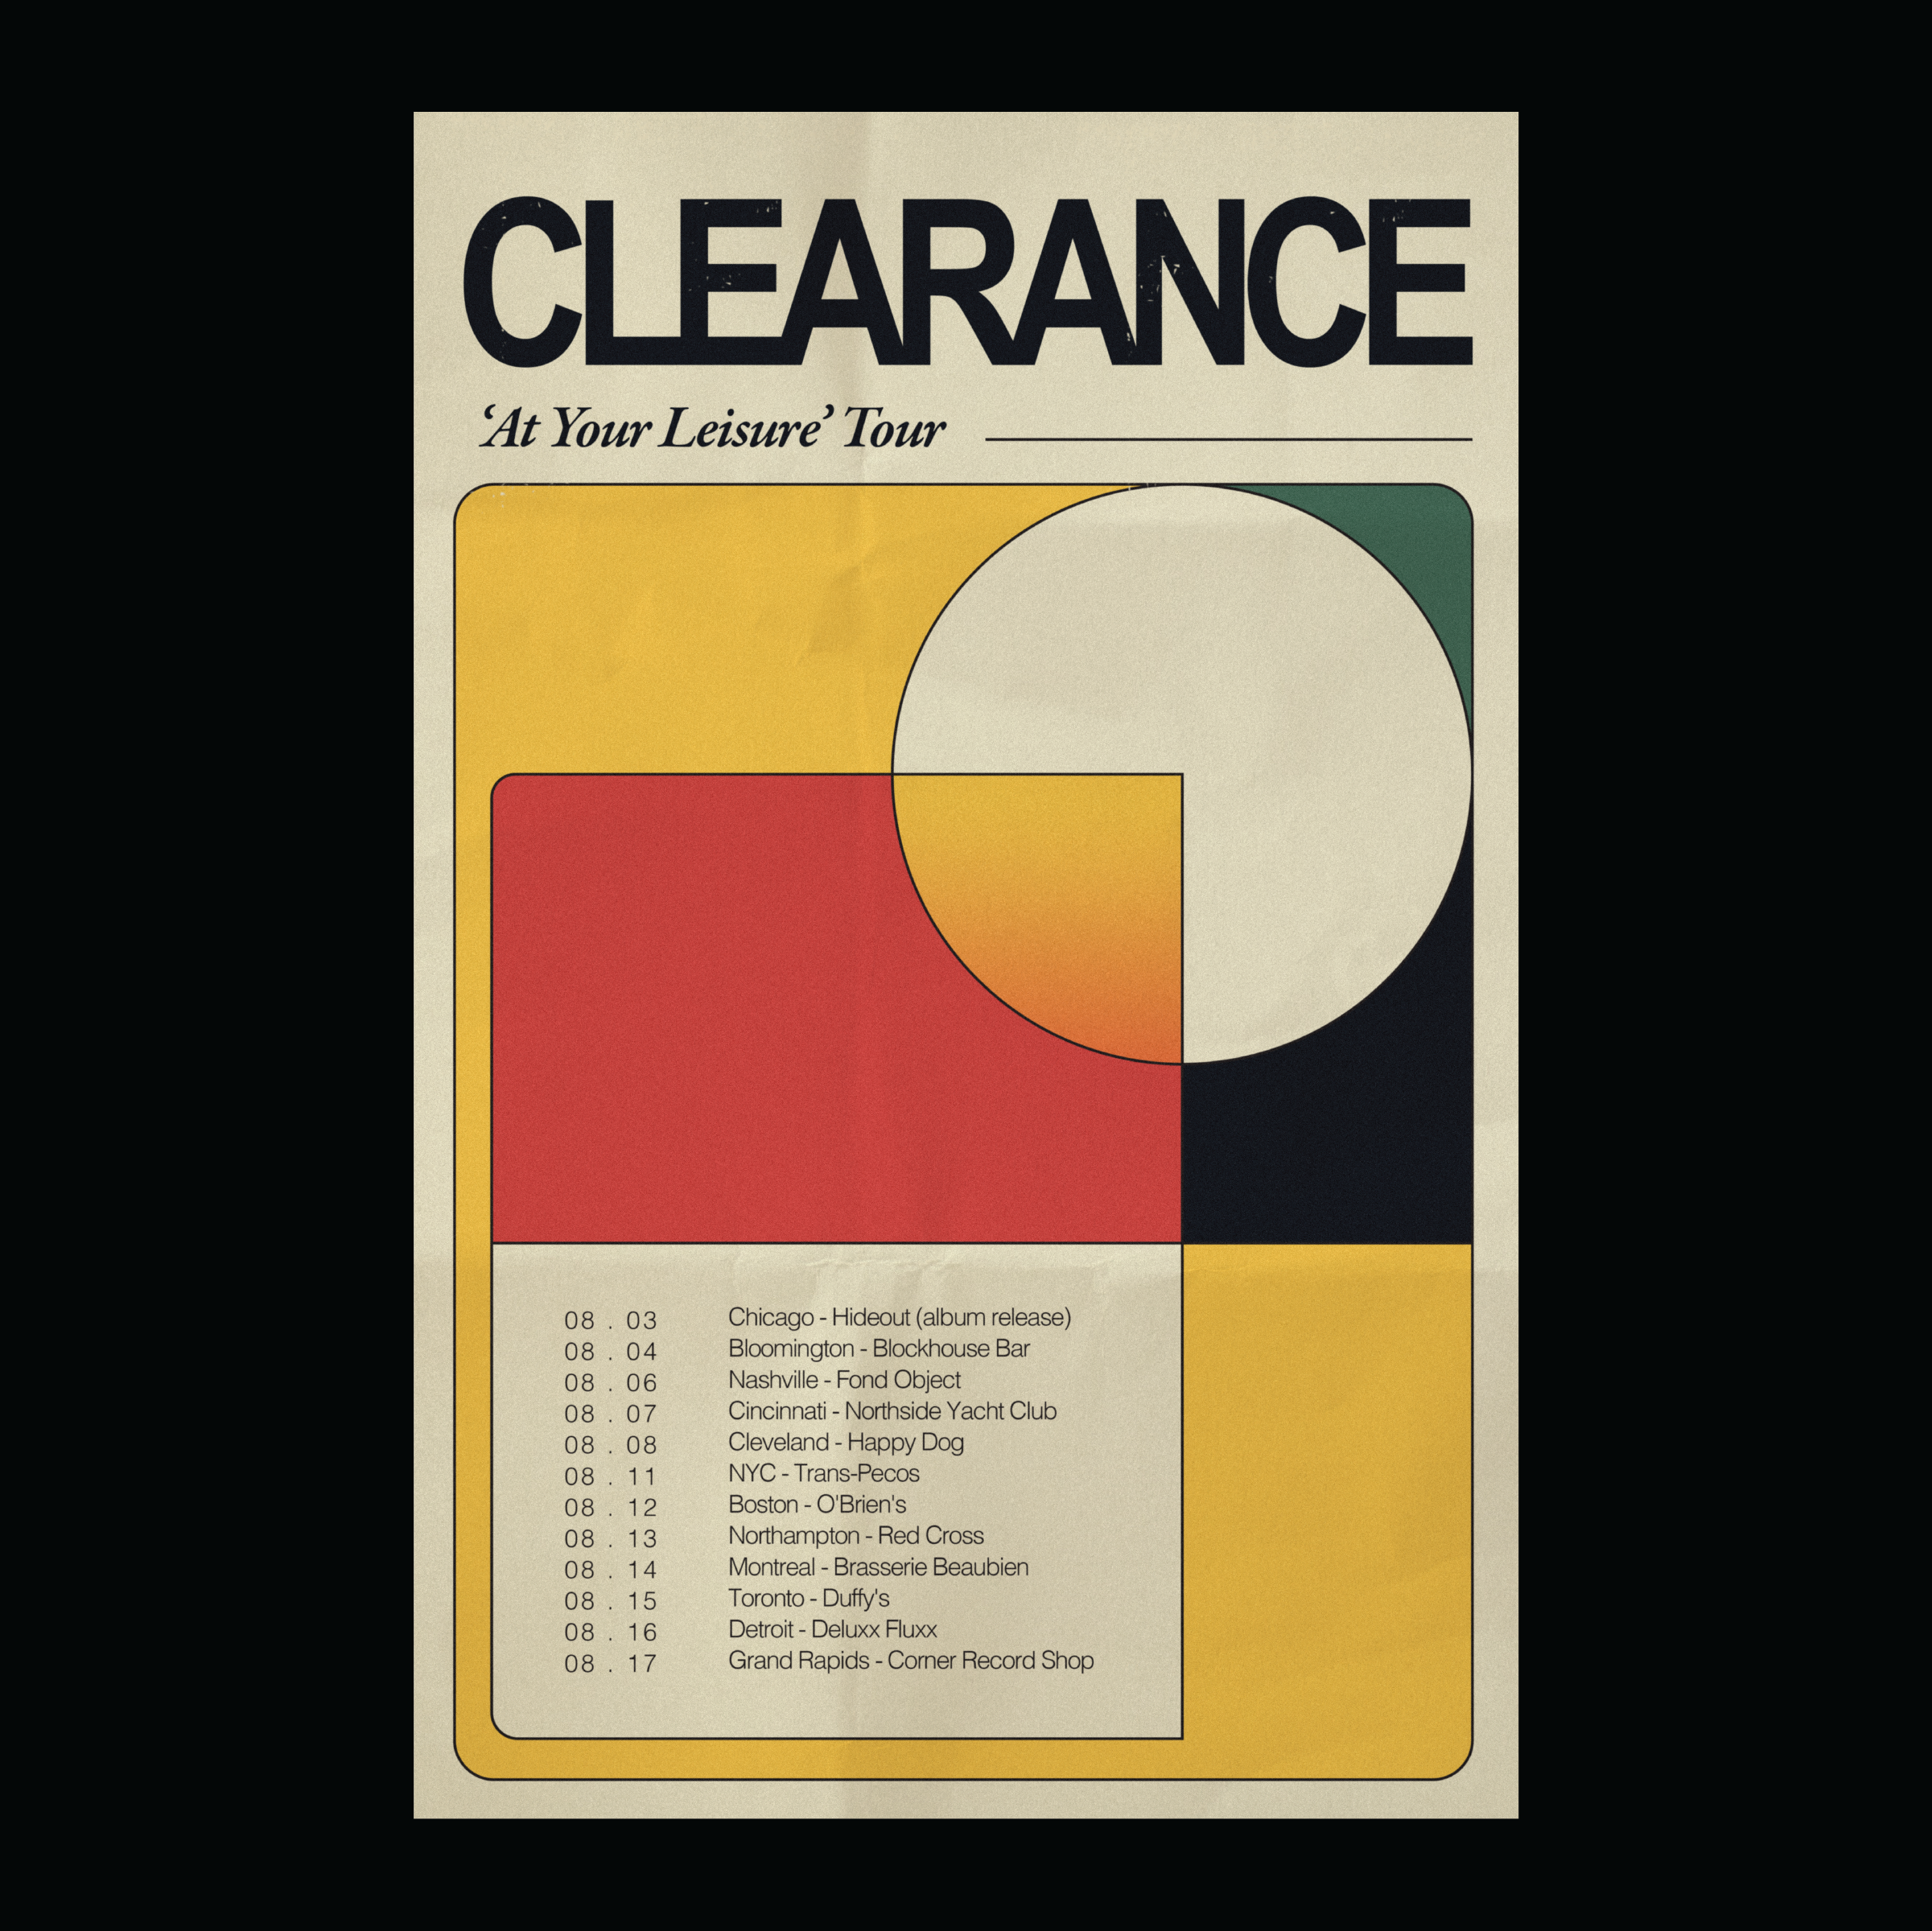 Clearance_insta-02.png